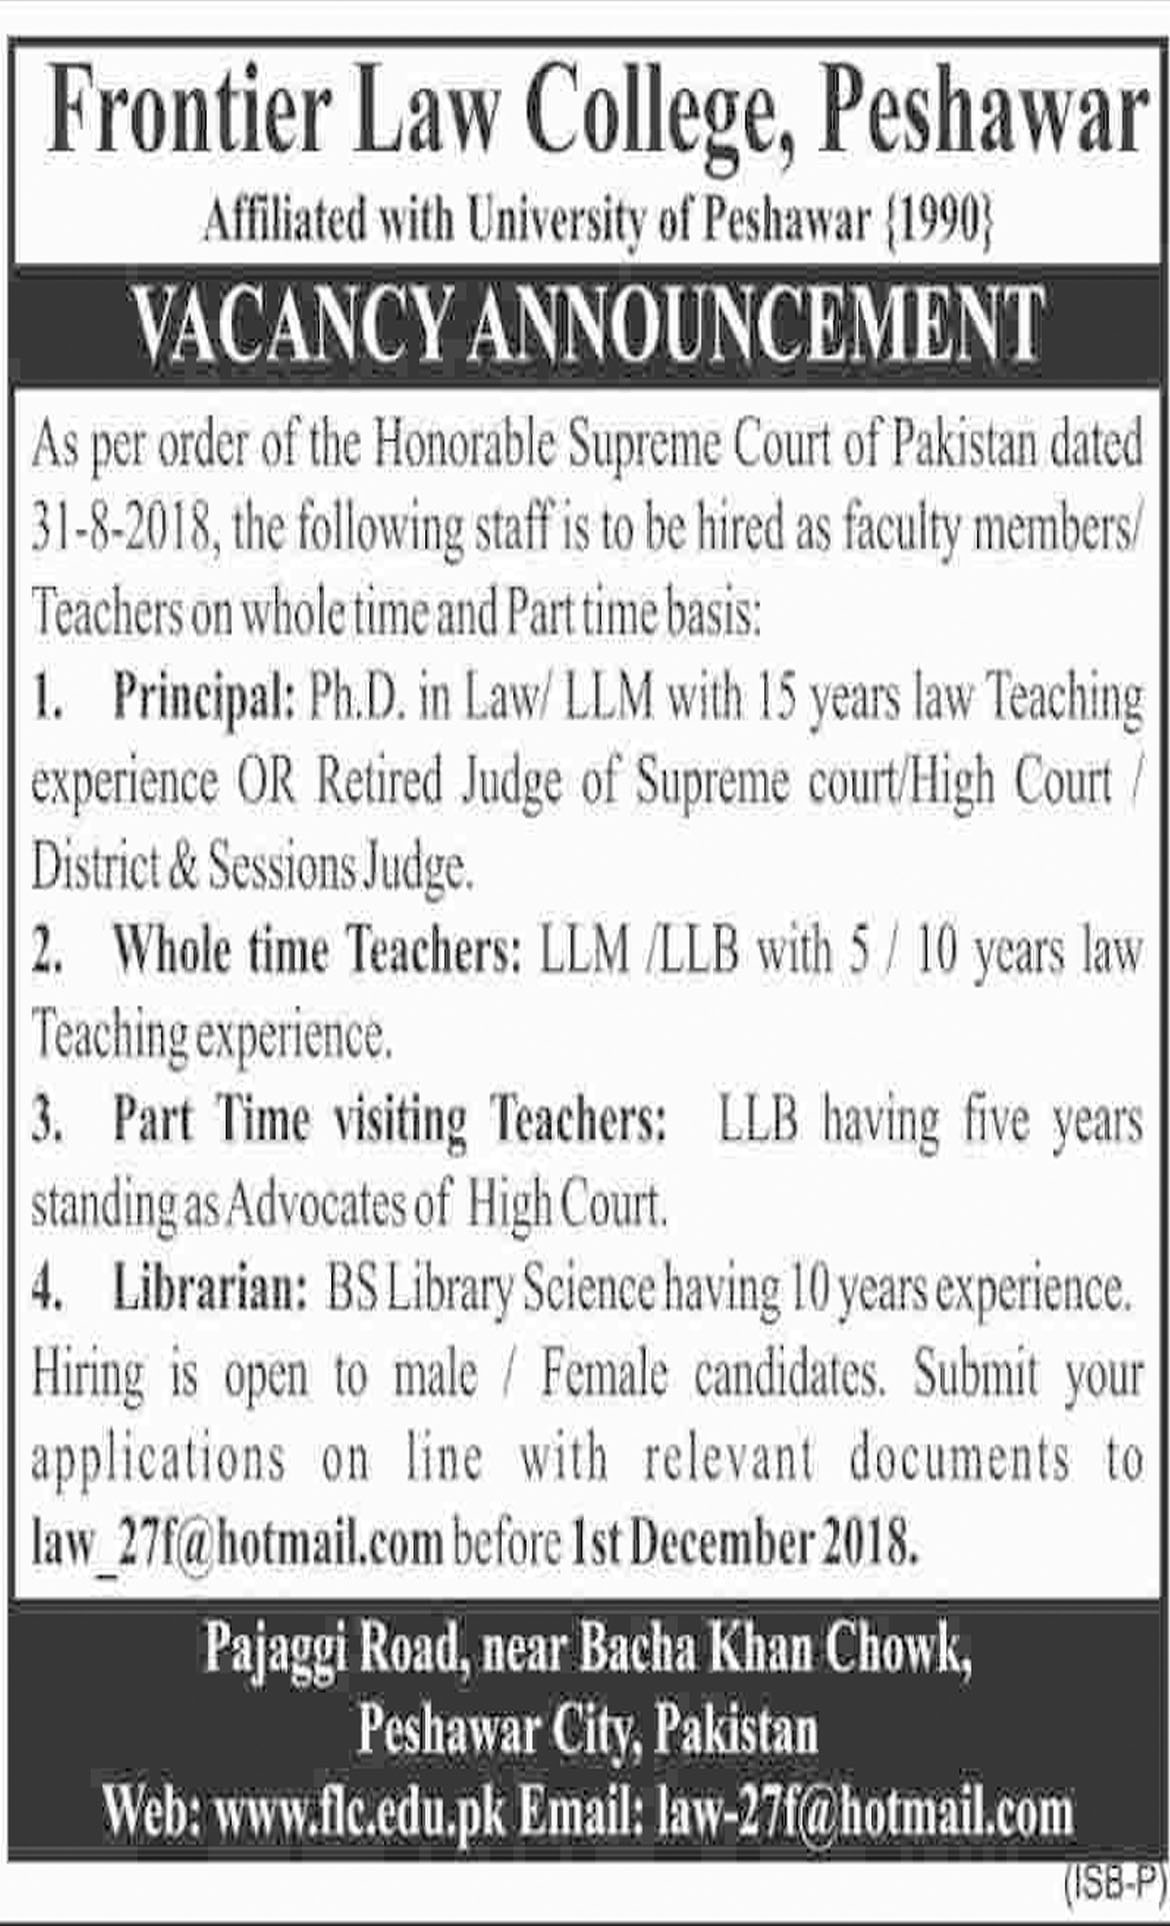 Jobs In Frontier Law College Peshawar 16 Nov 2018